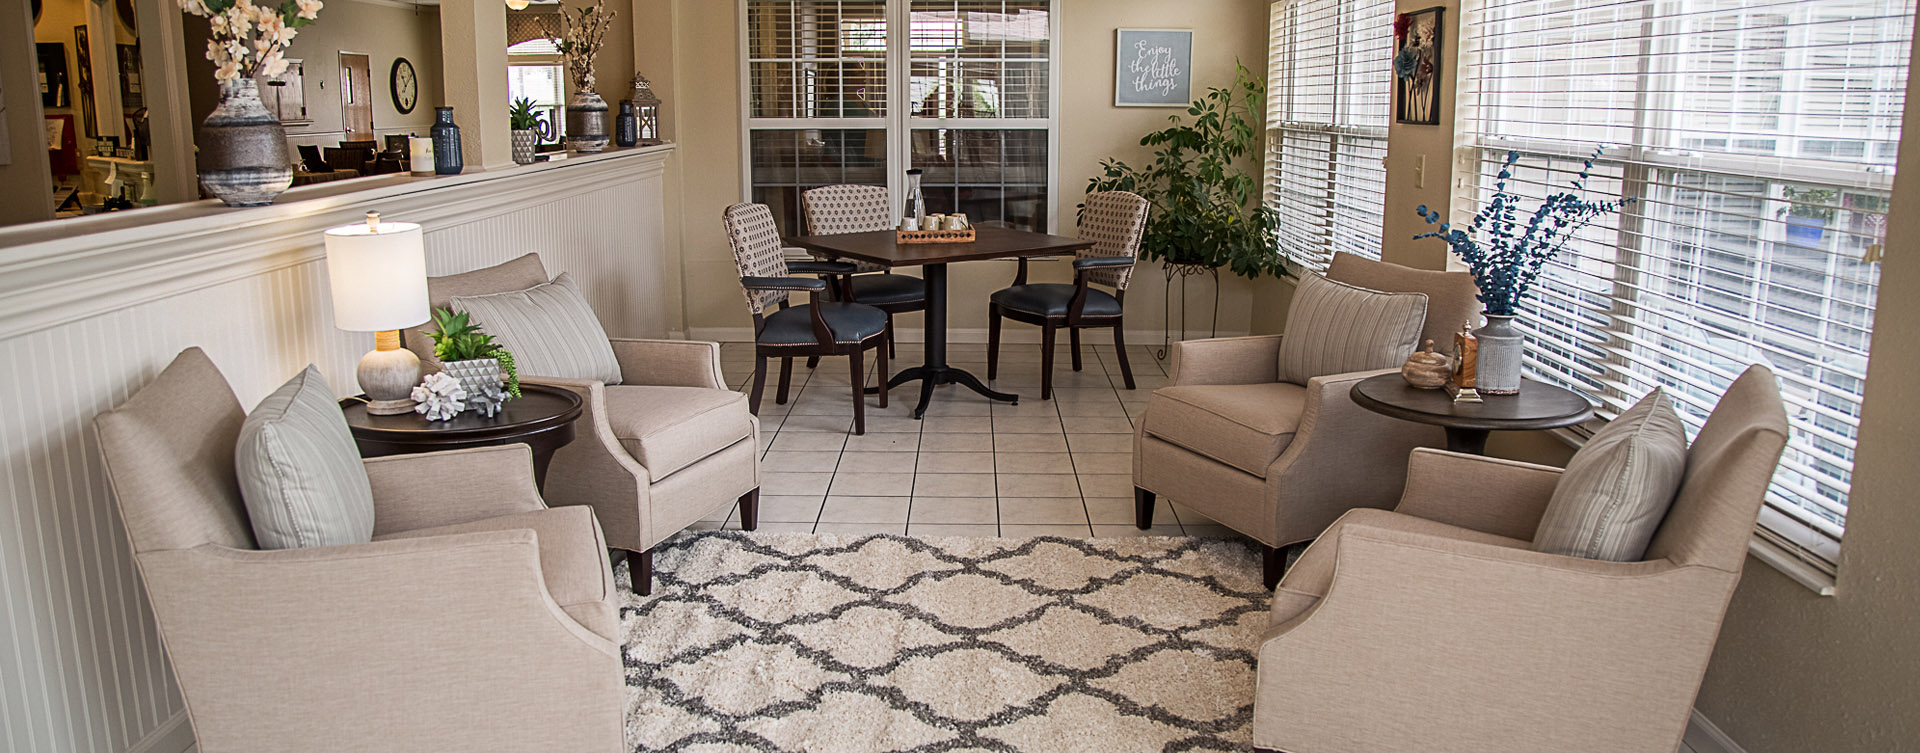 Enjoy the view of the outdoors from the sunroom at Bickford of Davenport